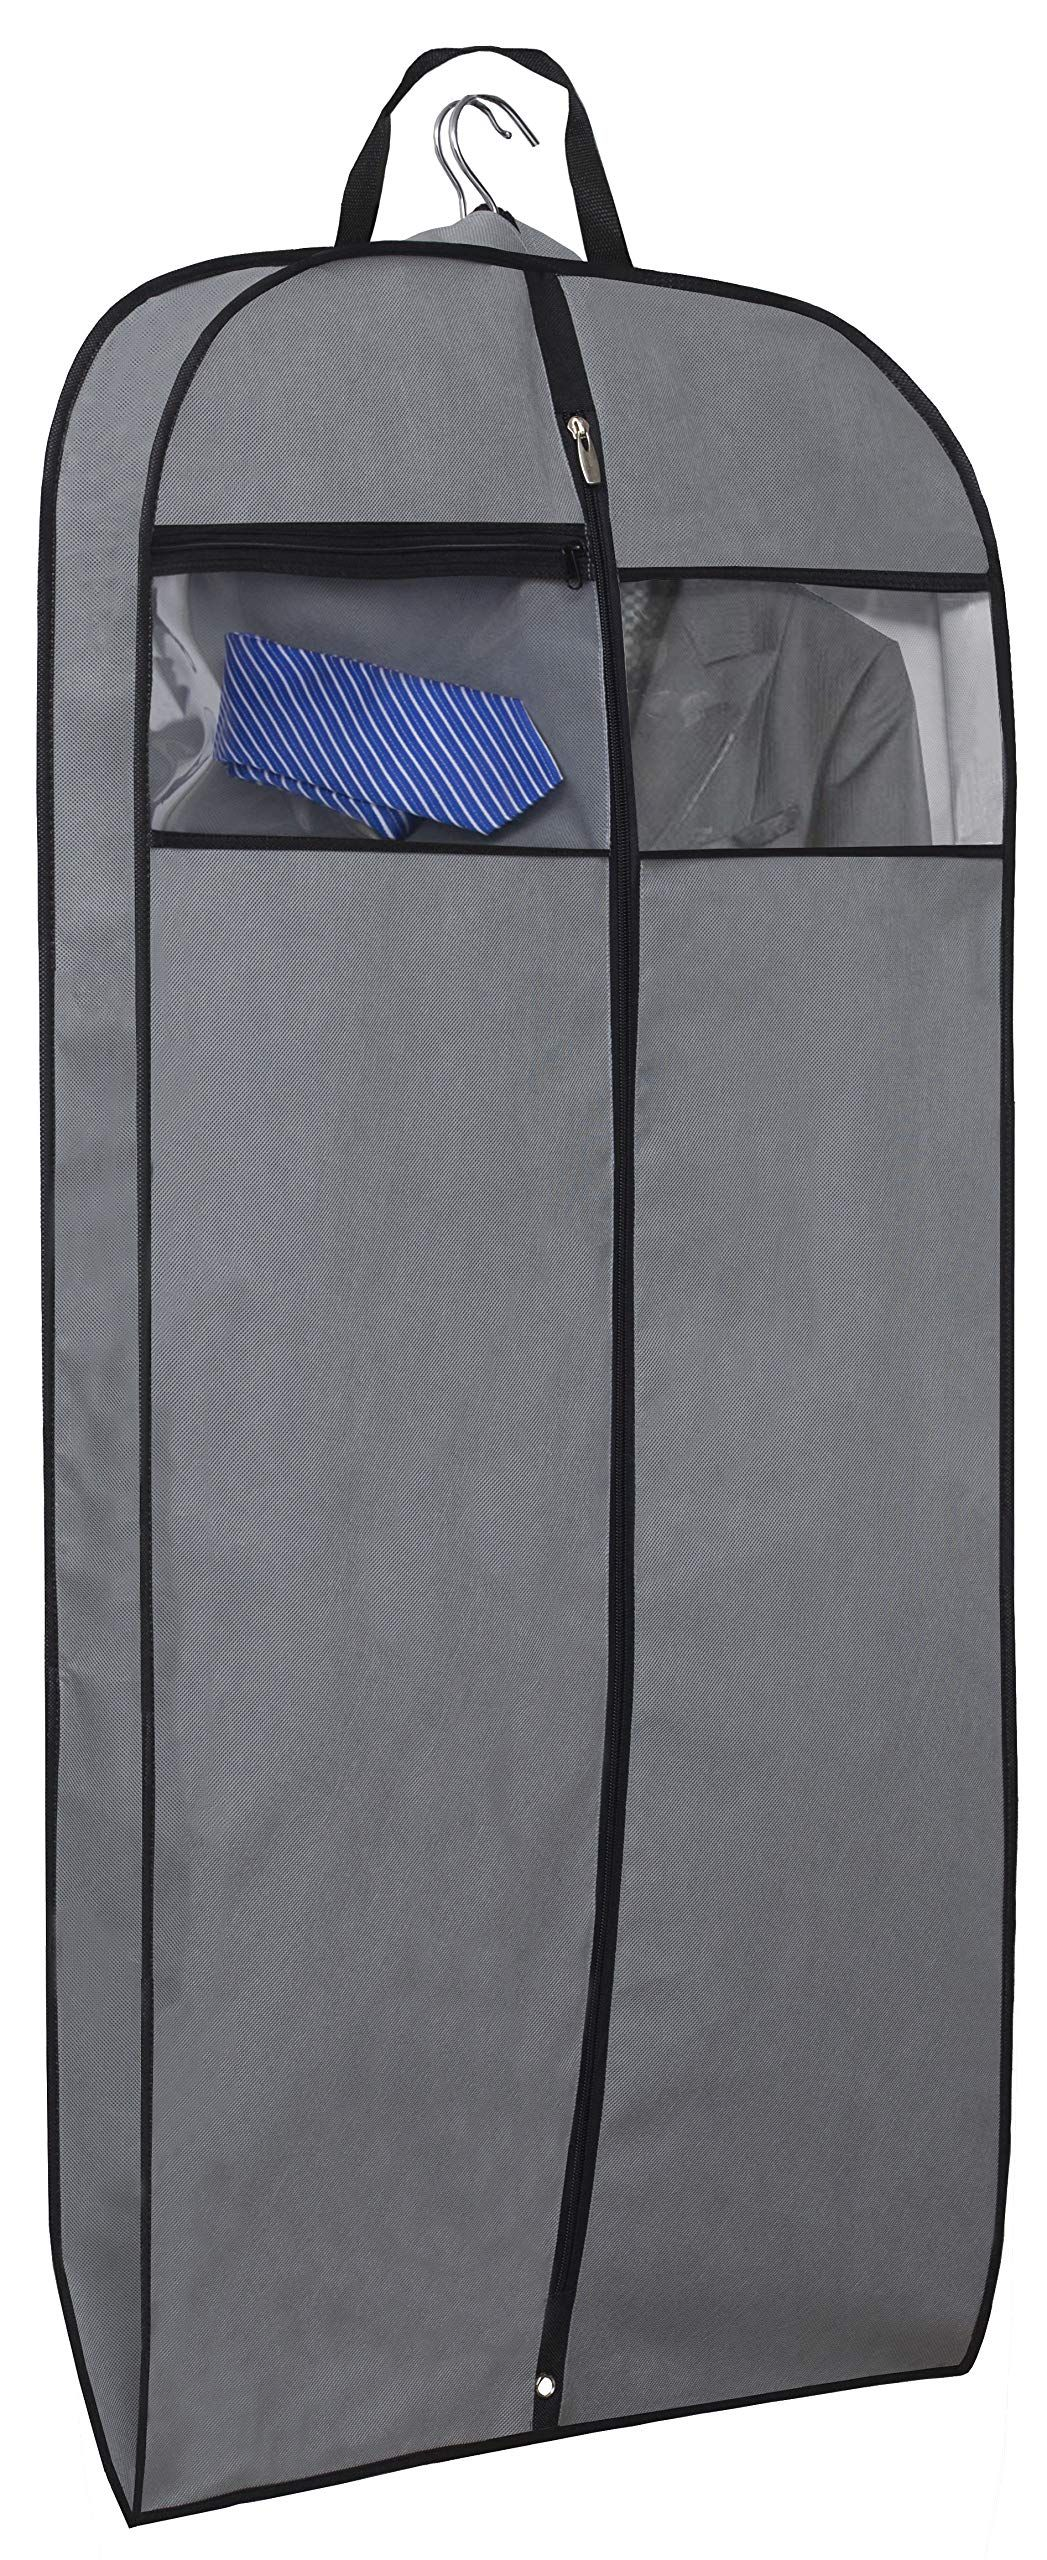 2834155cdd69 Garment Bag 5pcs 43 inch grey suit cover with 3.5 inch gusseted suit ...